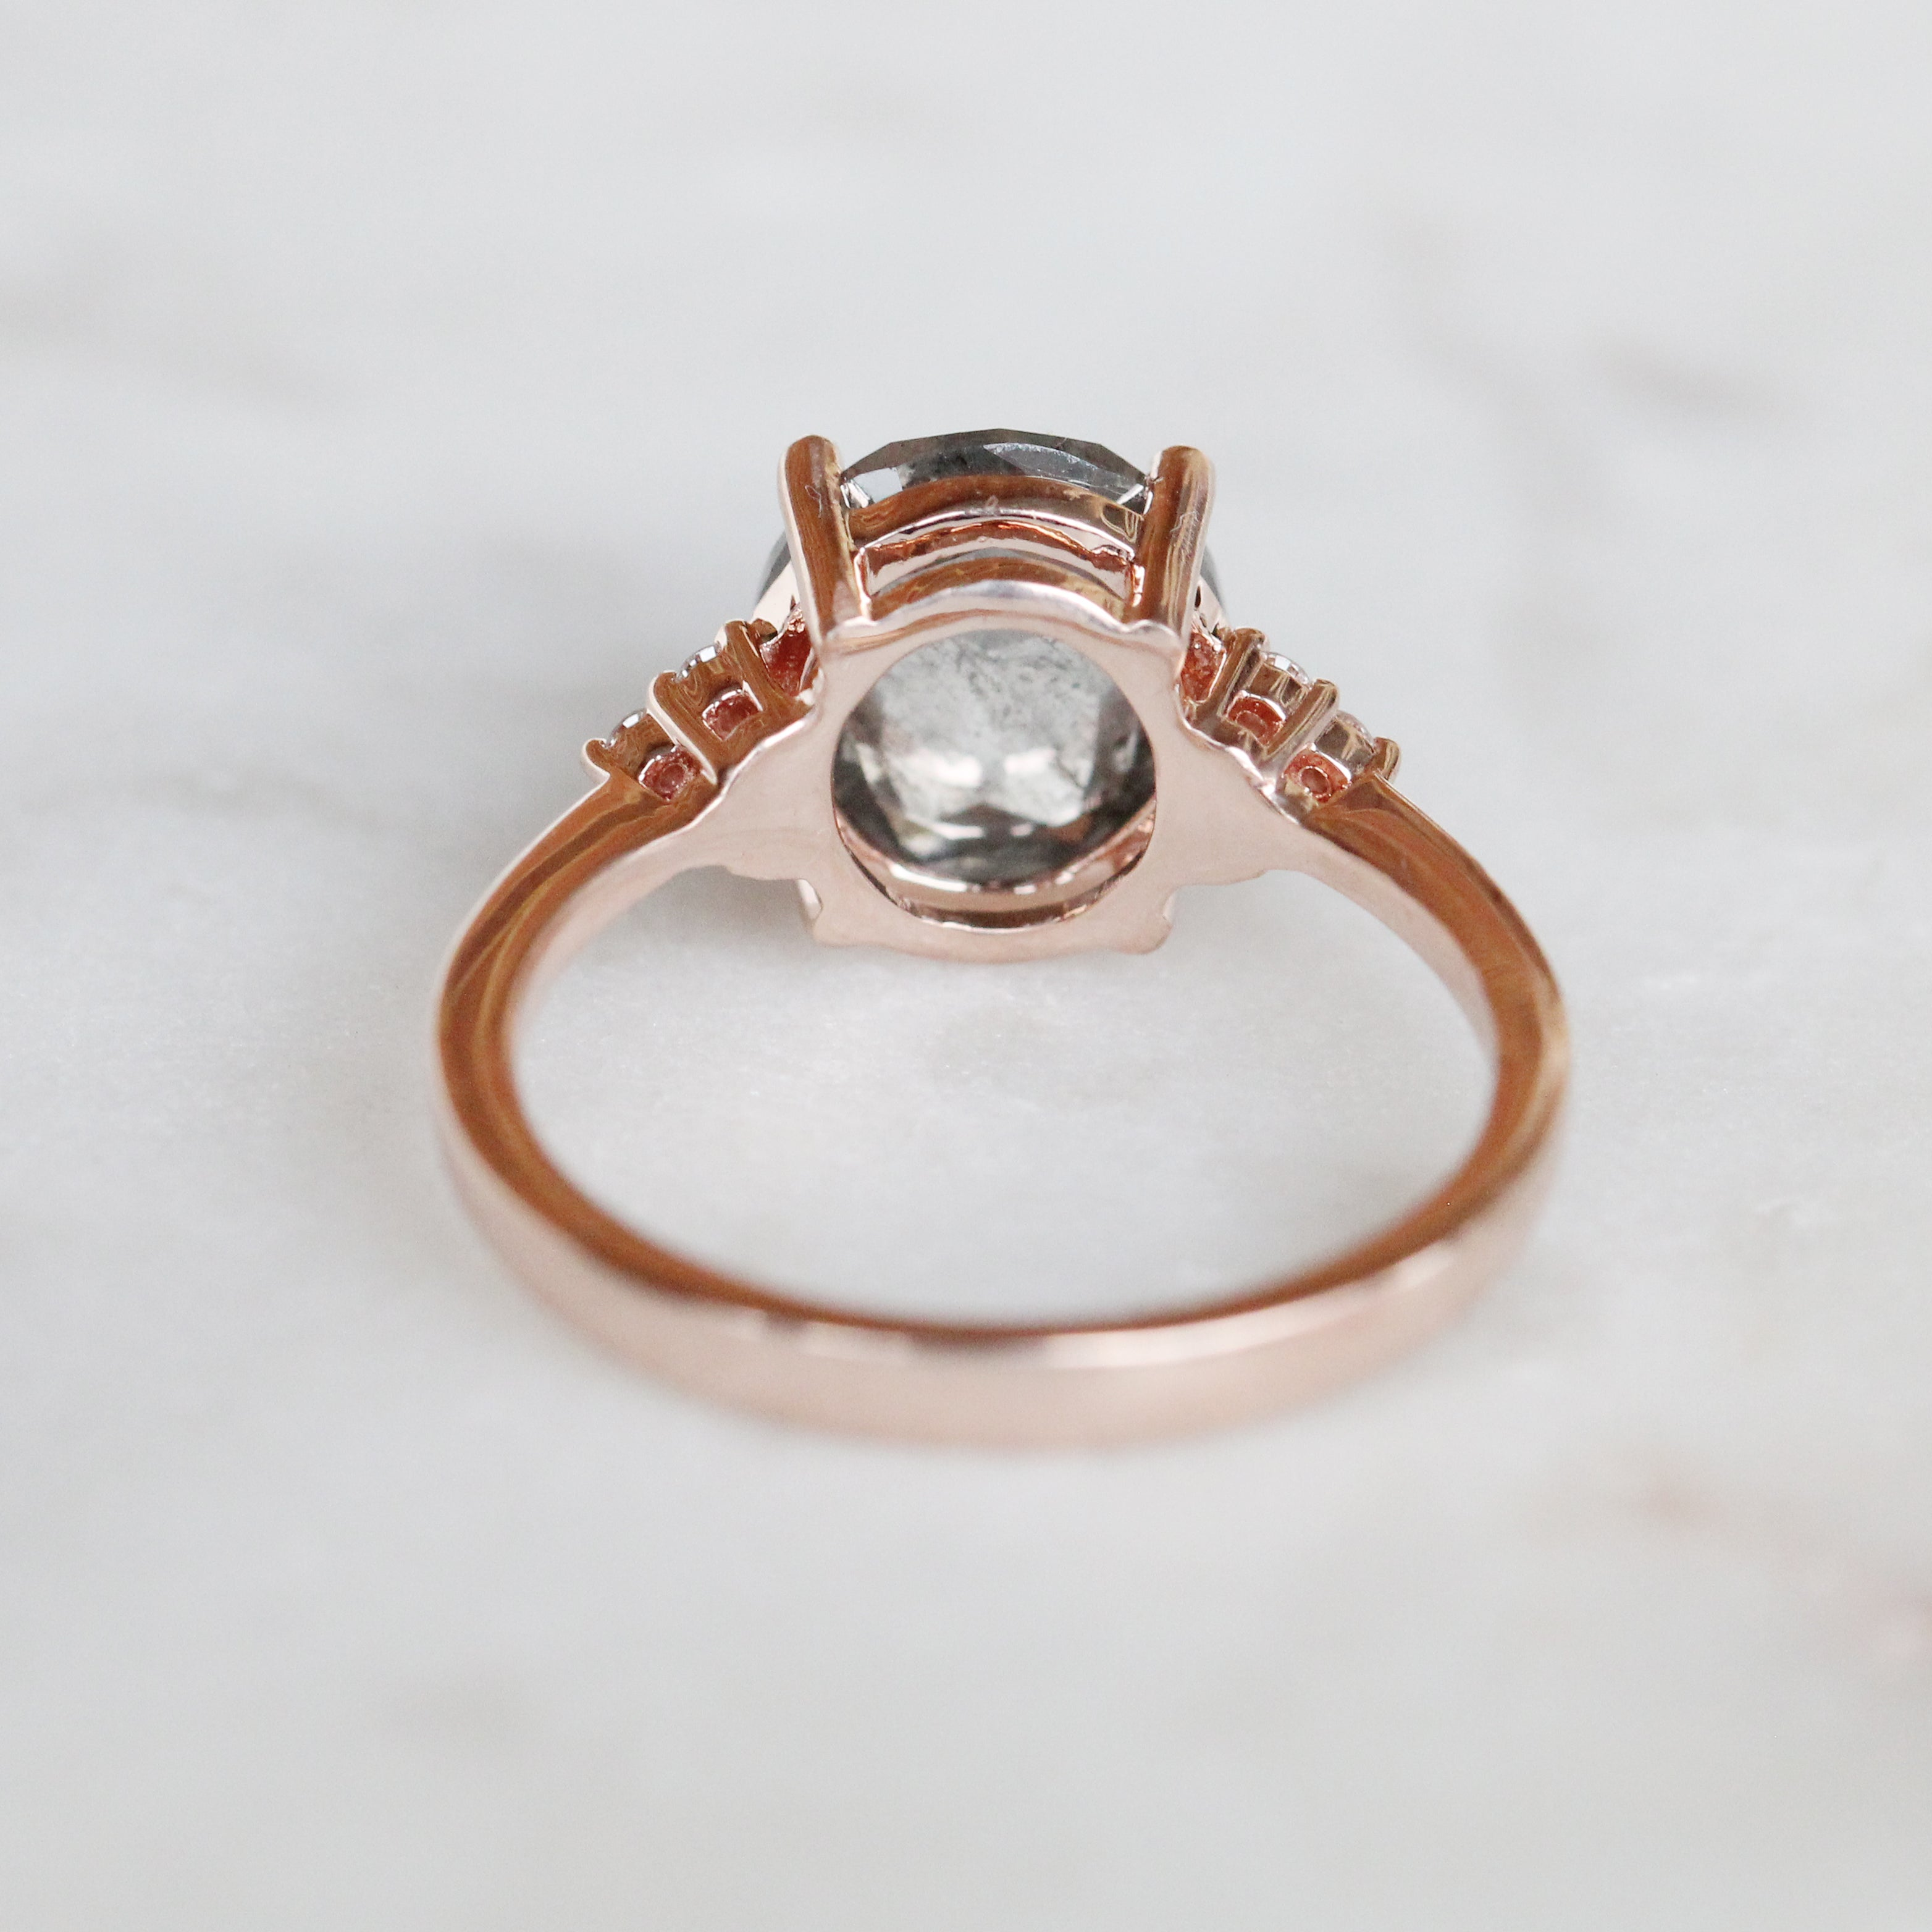 Imogene Ring with a 3.16 Carat Rose Cut Oval Celestial Diamond and Six 1.5mm Clear Accents in 10k Rose Gold - Ready to Size and Ship - Salt & Pepper Celestial Diamond Engagement Rings and Wedding Bands  by Midwinter Co.